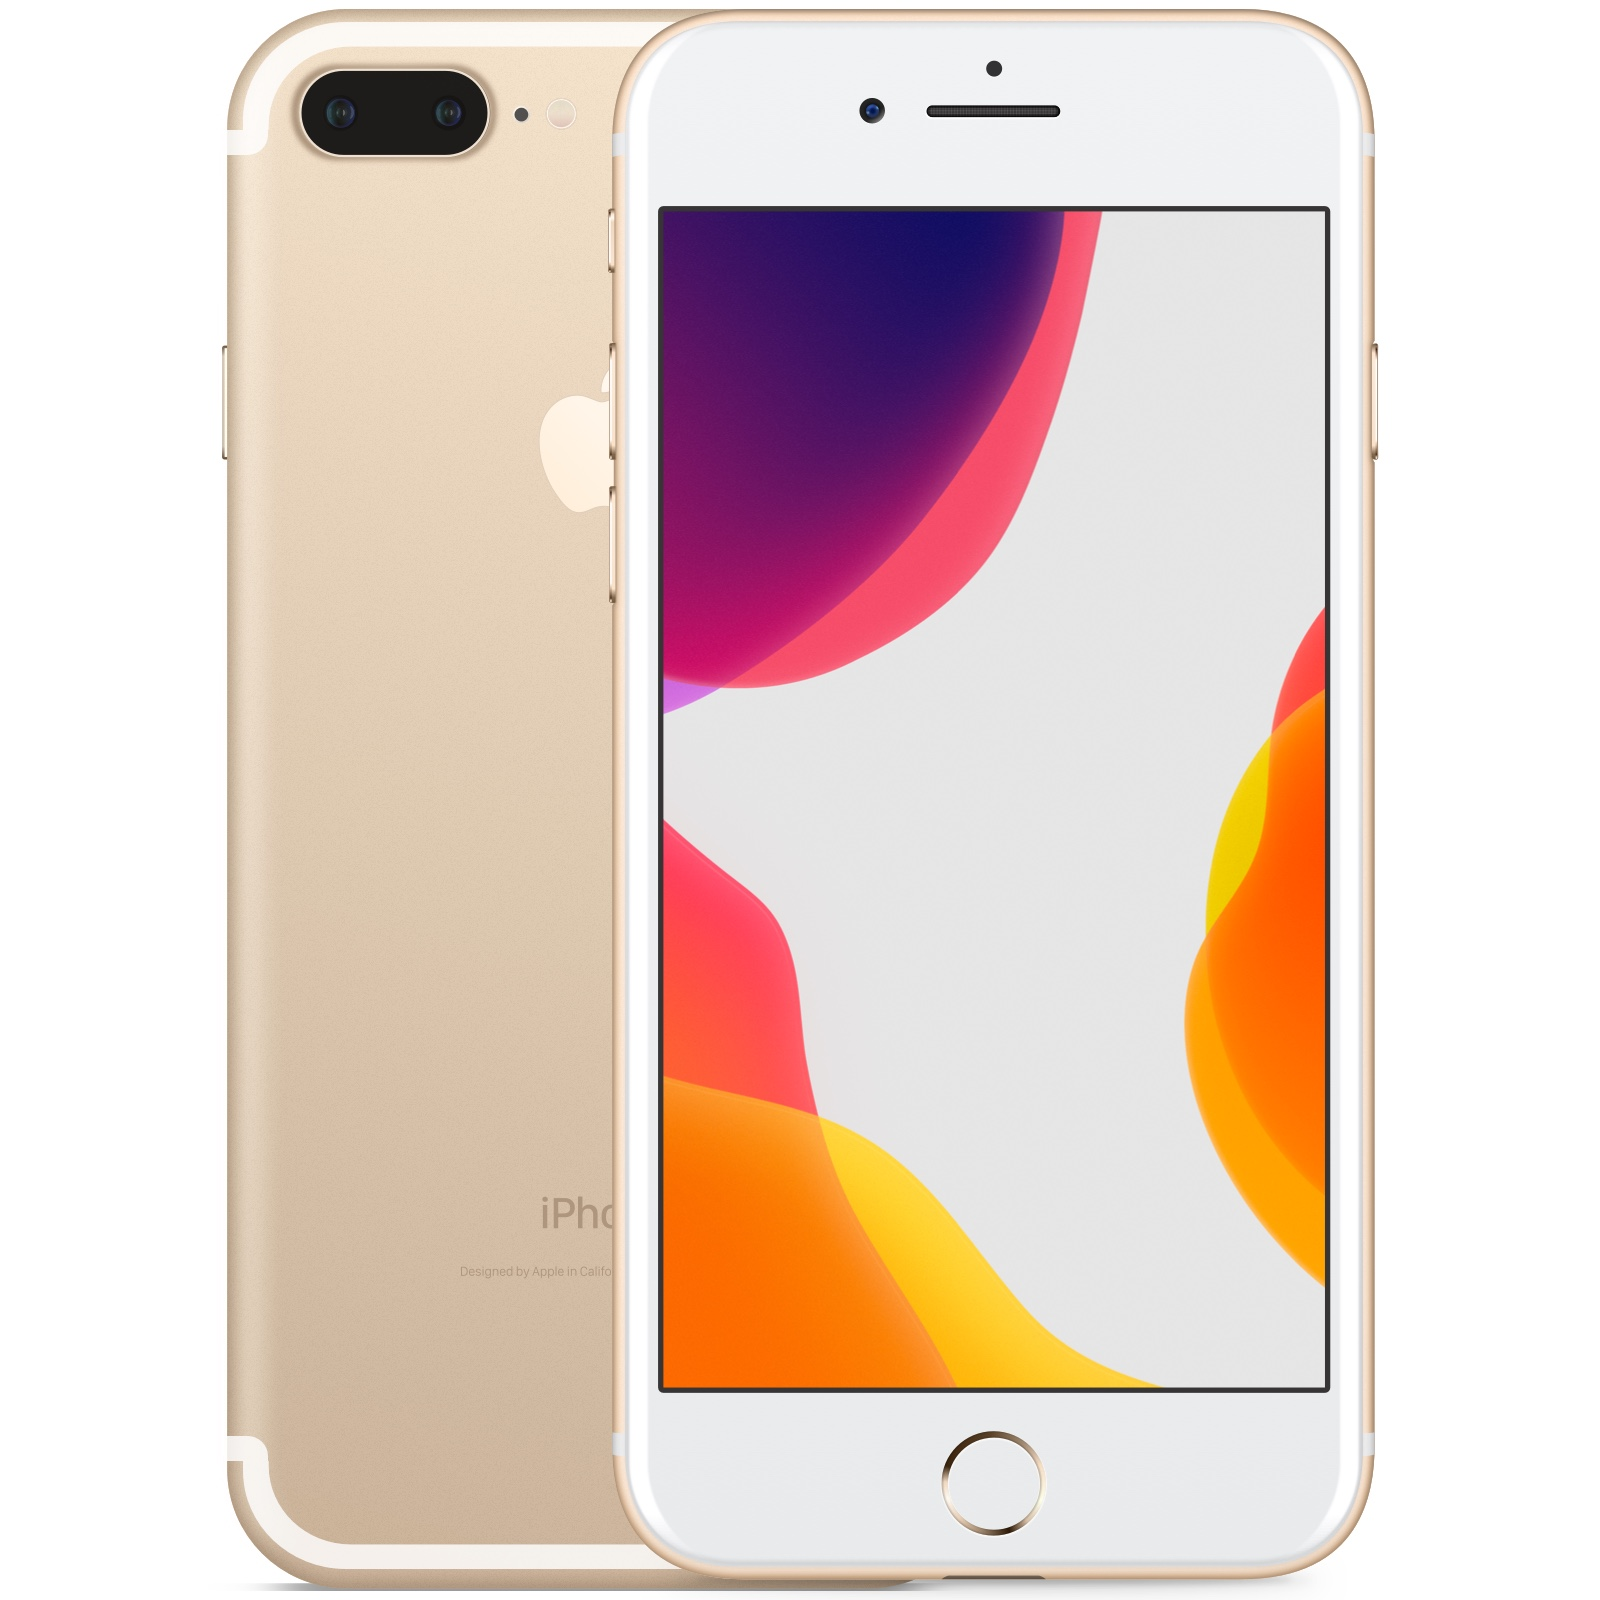 iPhone7Plus256GB-kulta-2-1.jpg